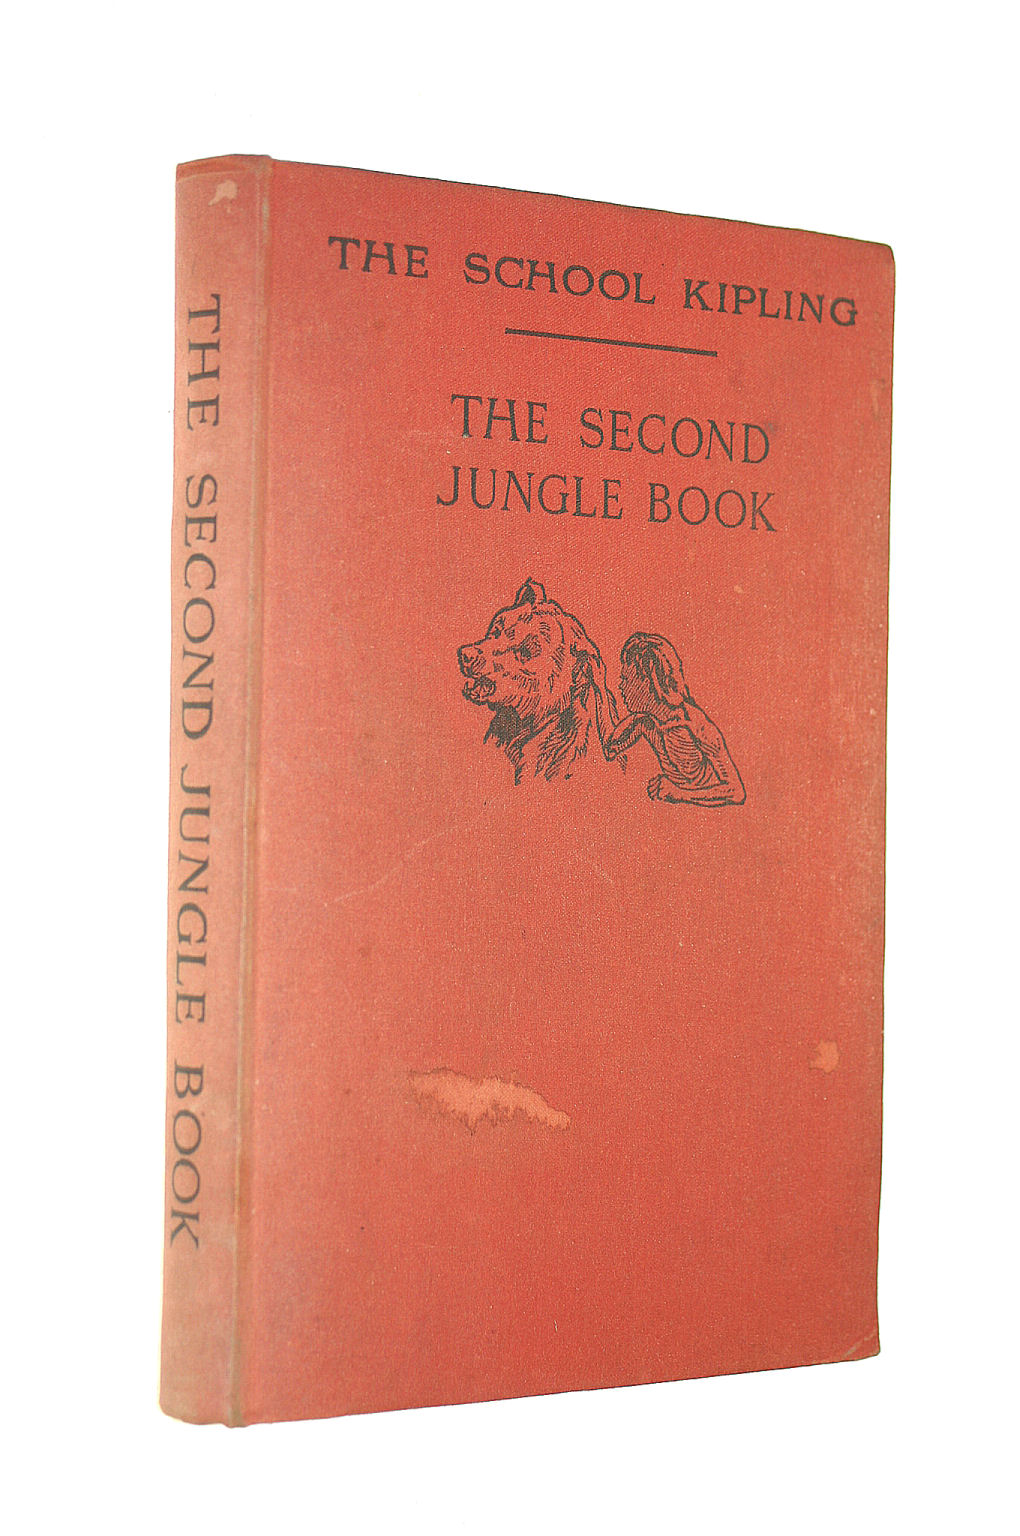 Image for The Second Jungle Book - The School Kipling